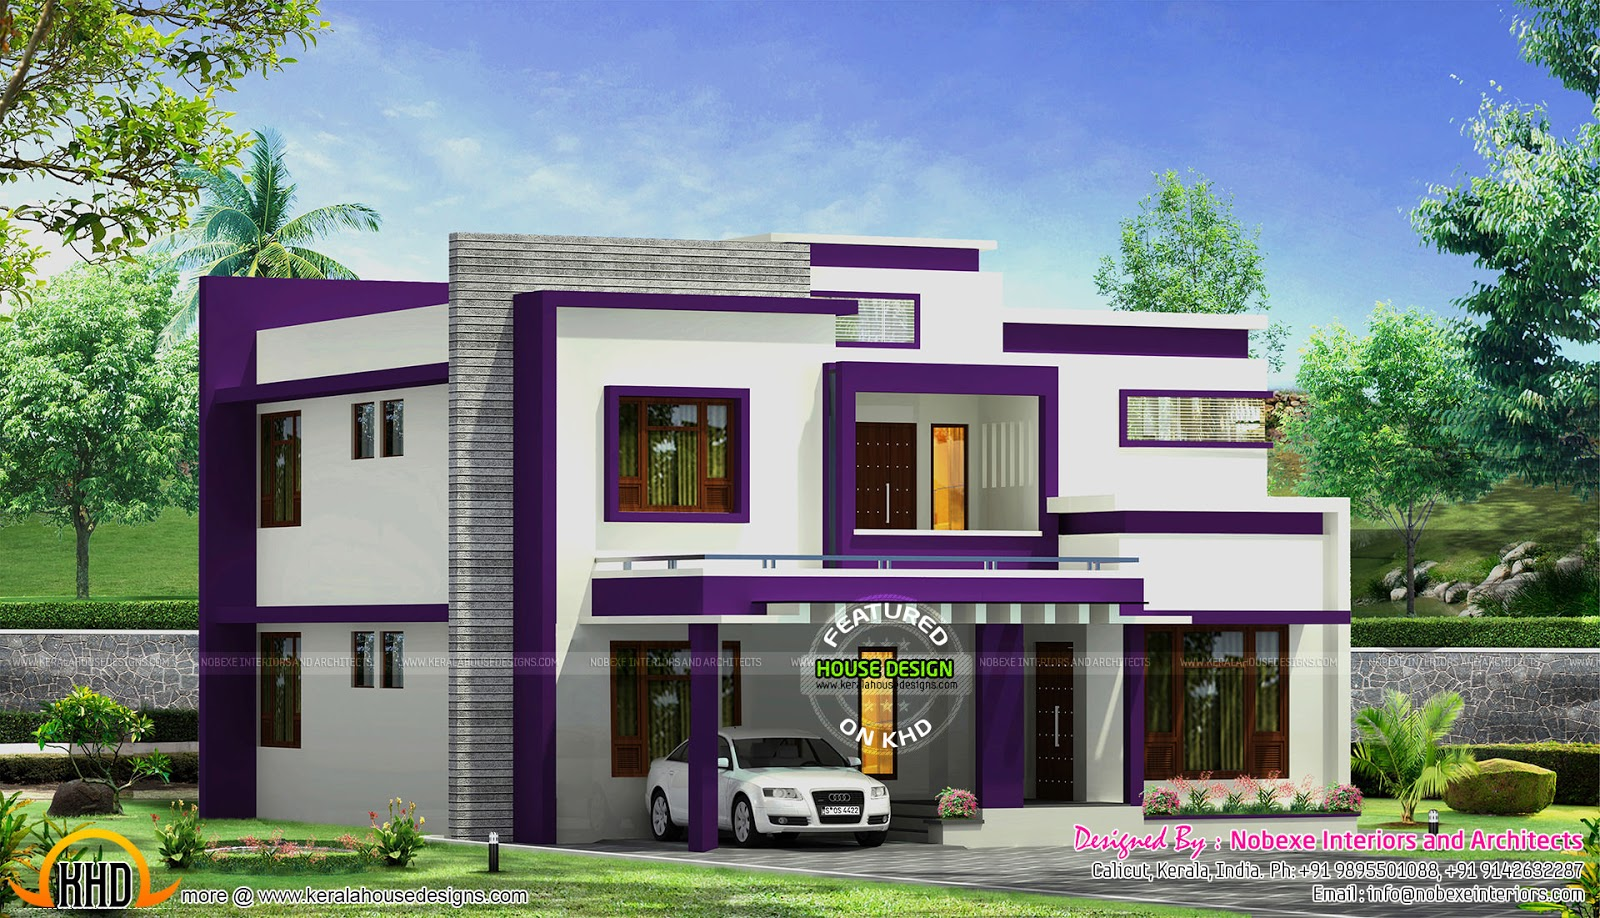 Contemporary home design by nobexe interiors kerala home for Home and land design